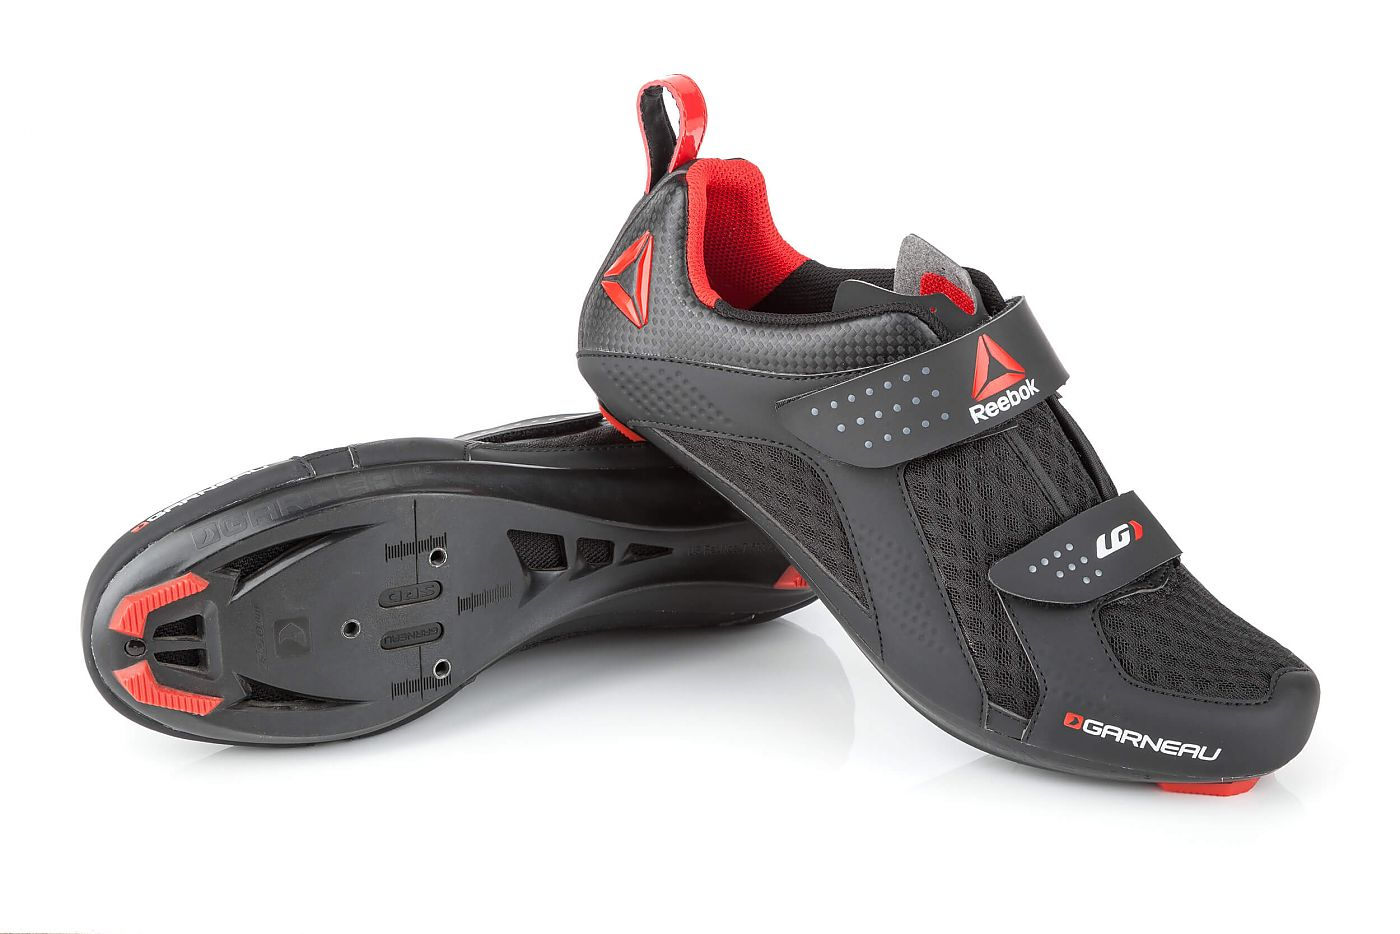 Thumbnail Credit (capovelo.com): In addition, the Actifly will be available in both a men's and woman's version, which will retail for $110.